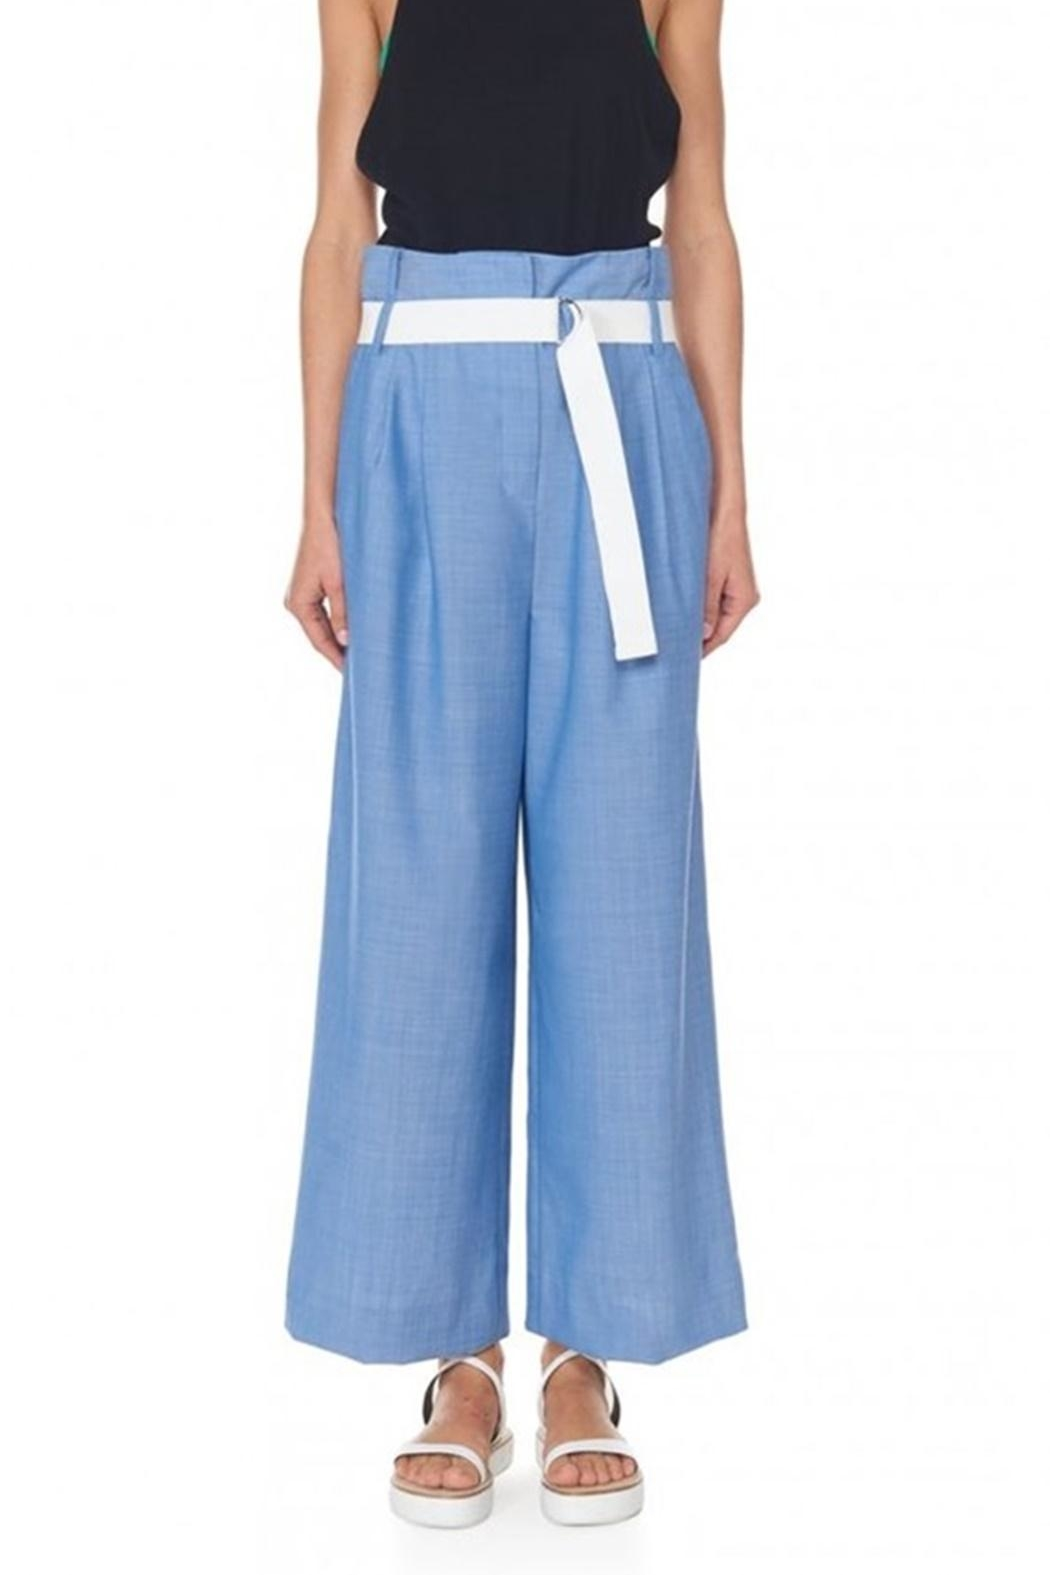 Tibi Serge Suiting Pant - Side Cropped Image